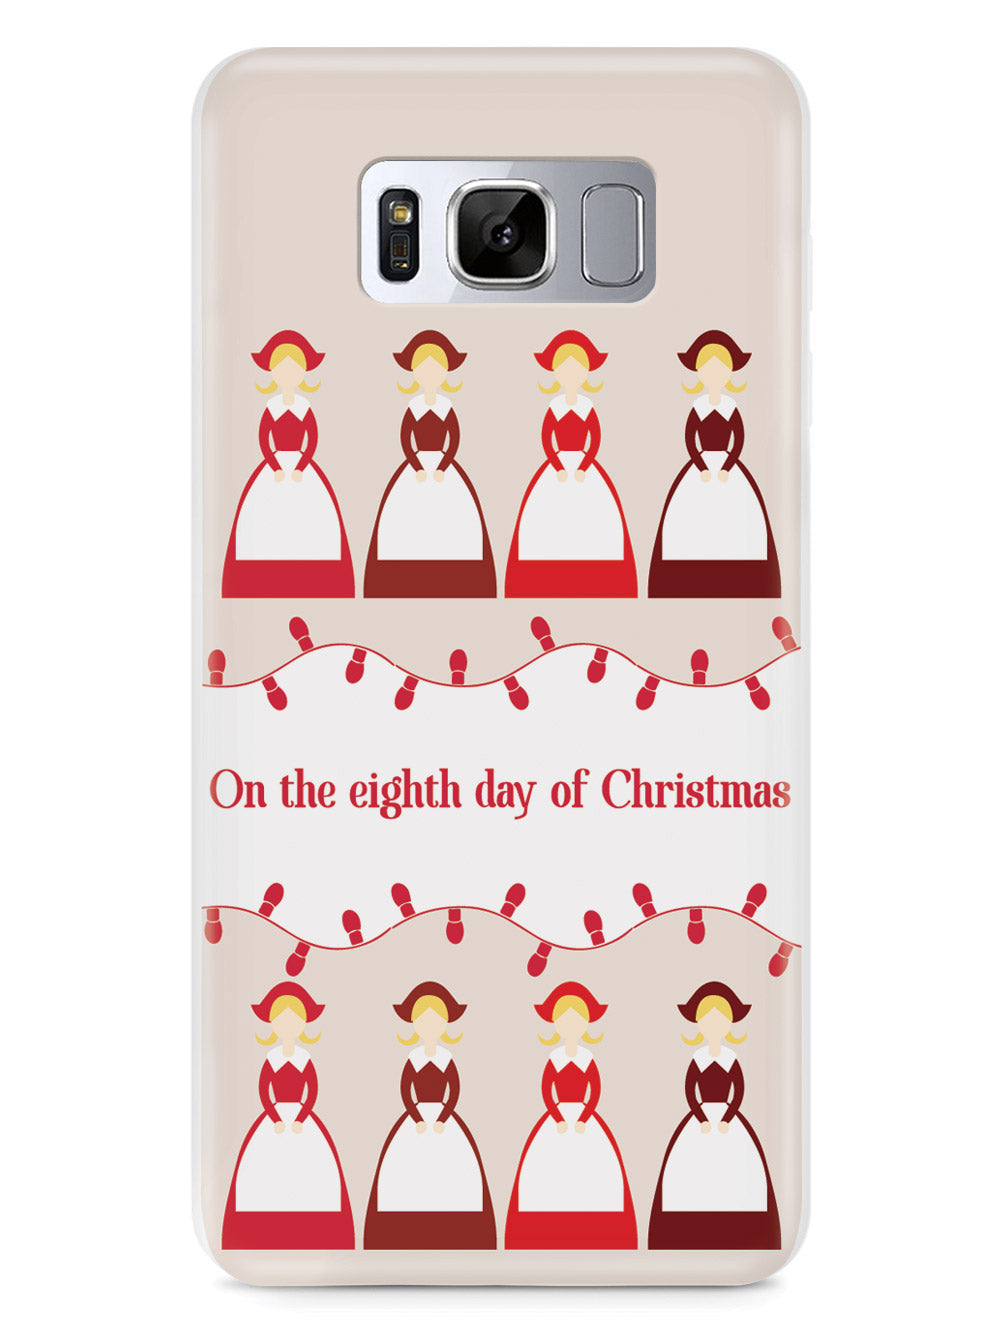 On the Eighth Day of Christmas - 8 Maids a Milking  Case